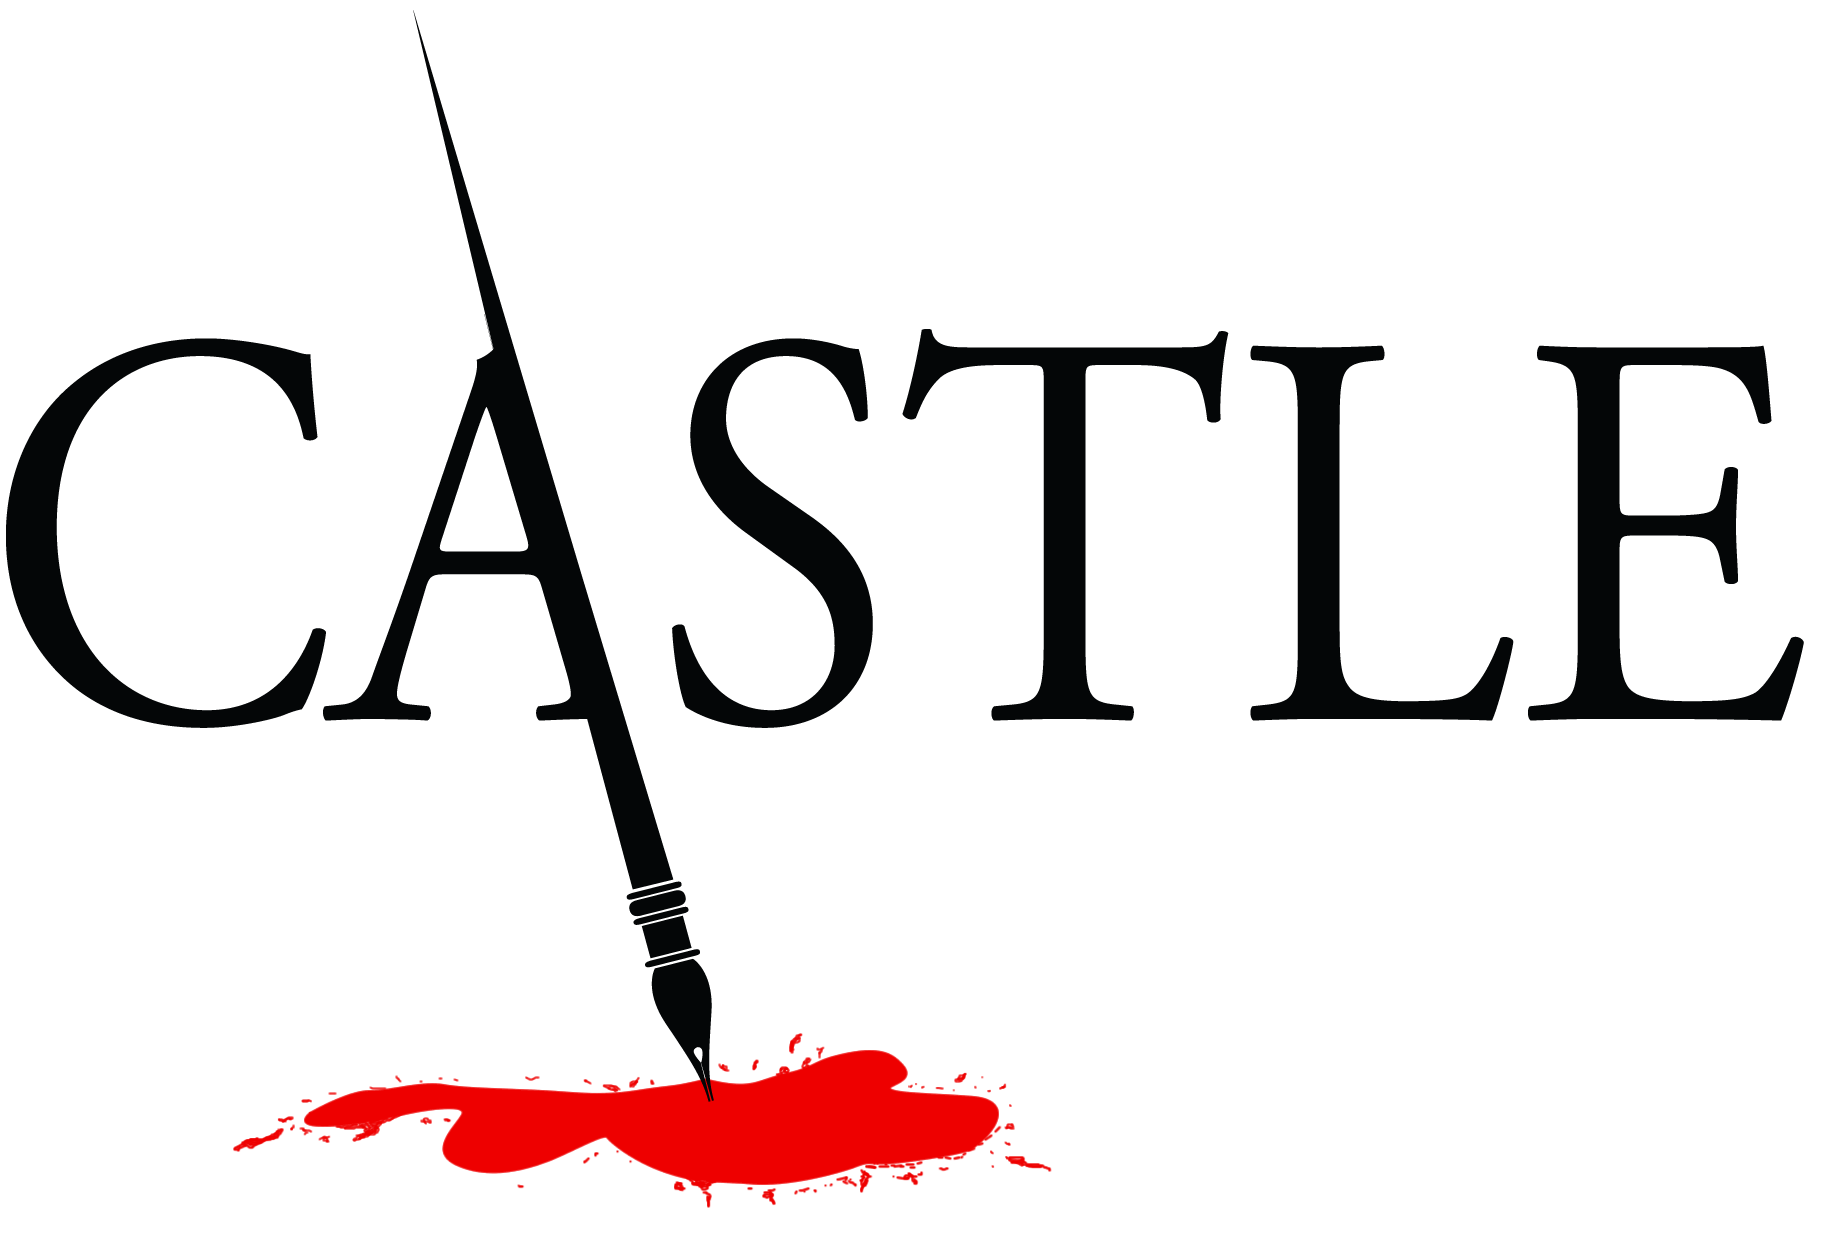 tv shows logo. image - castle-tv-show-logo.png | lord of ultima wiki fandom powered by wikia tv shows logo a